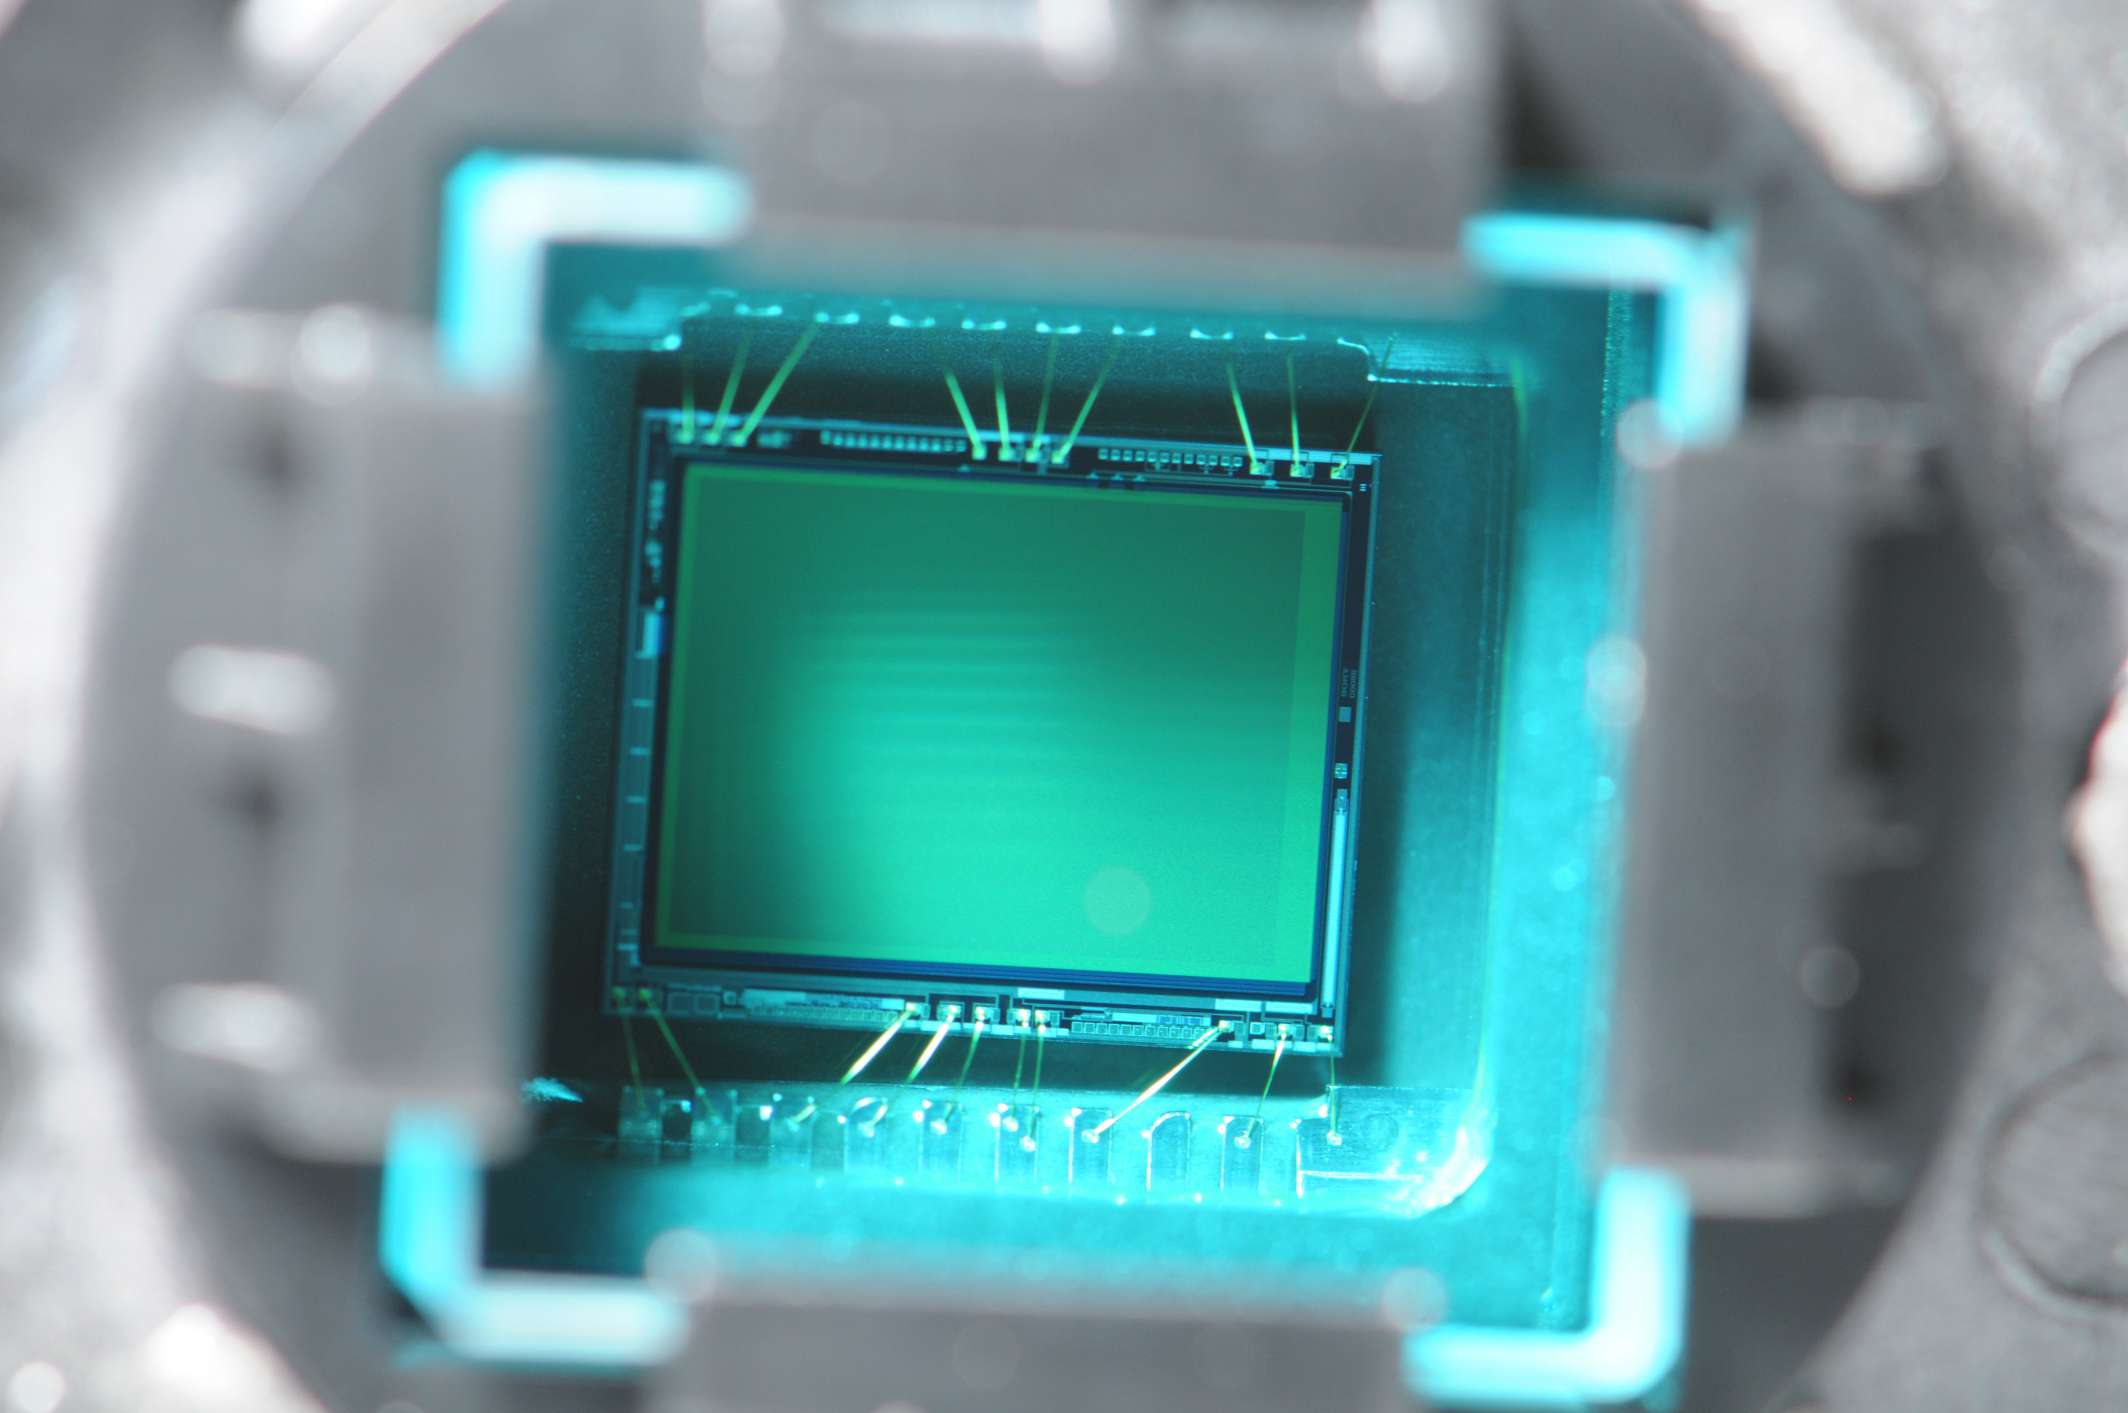 What is a CMOS image sensor?